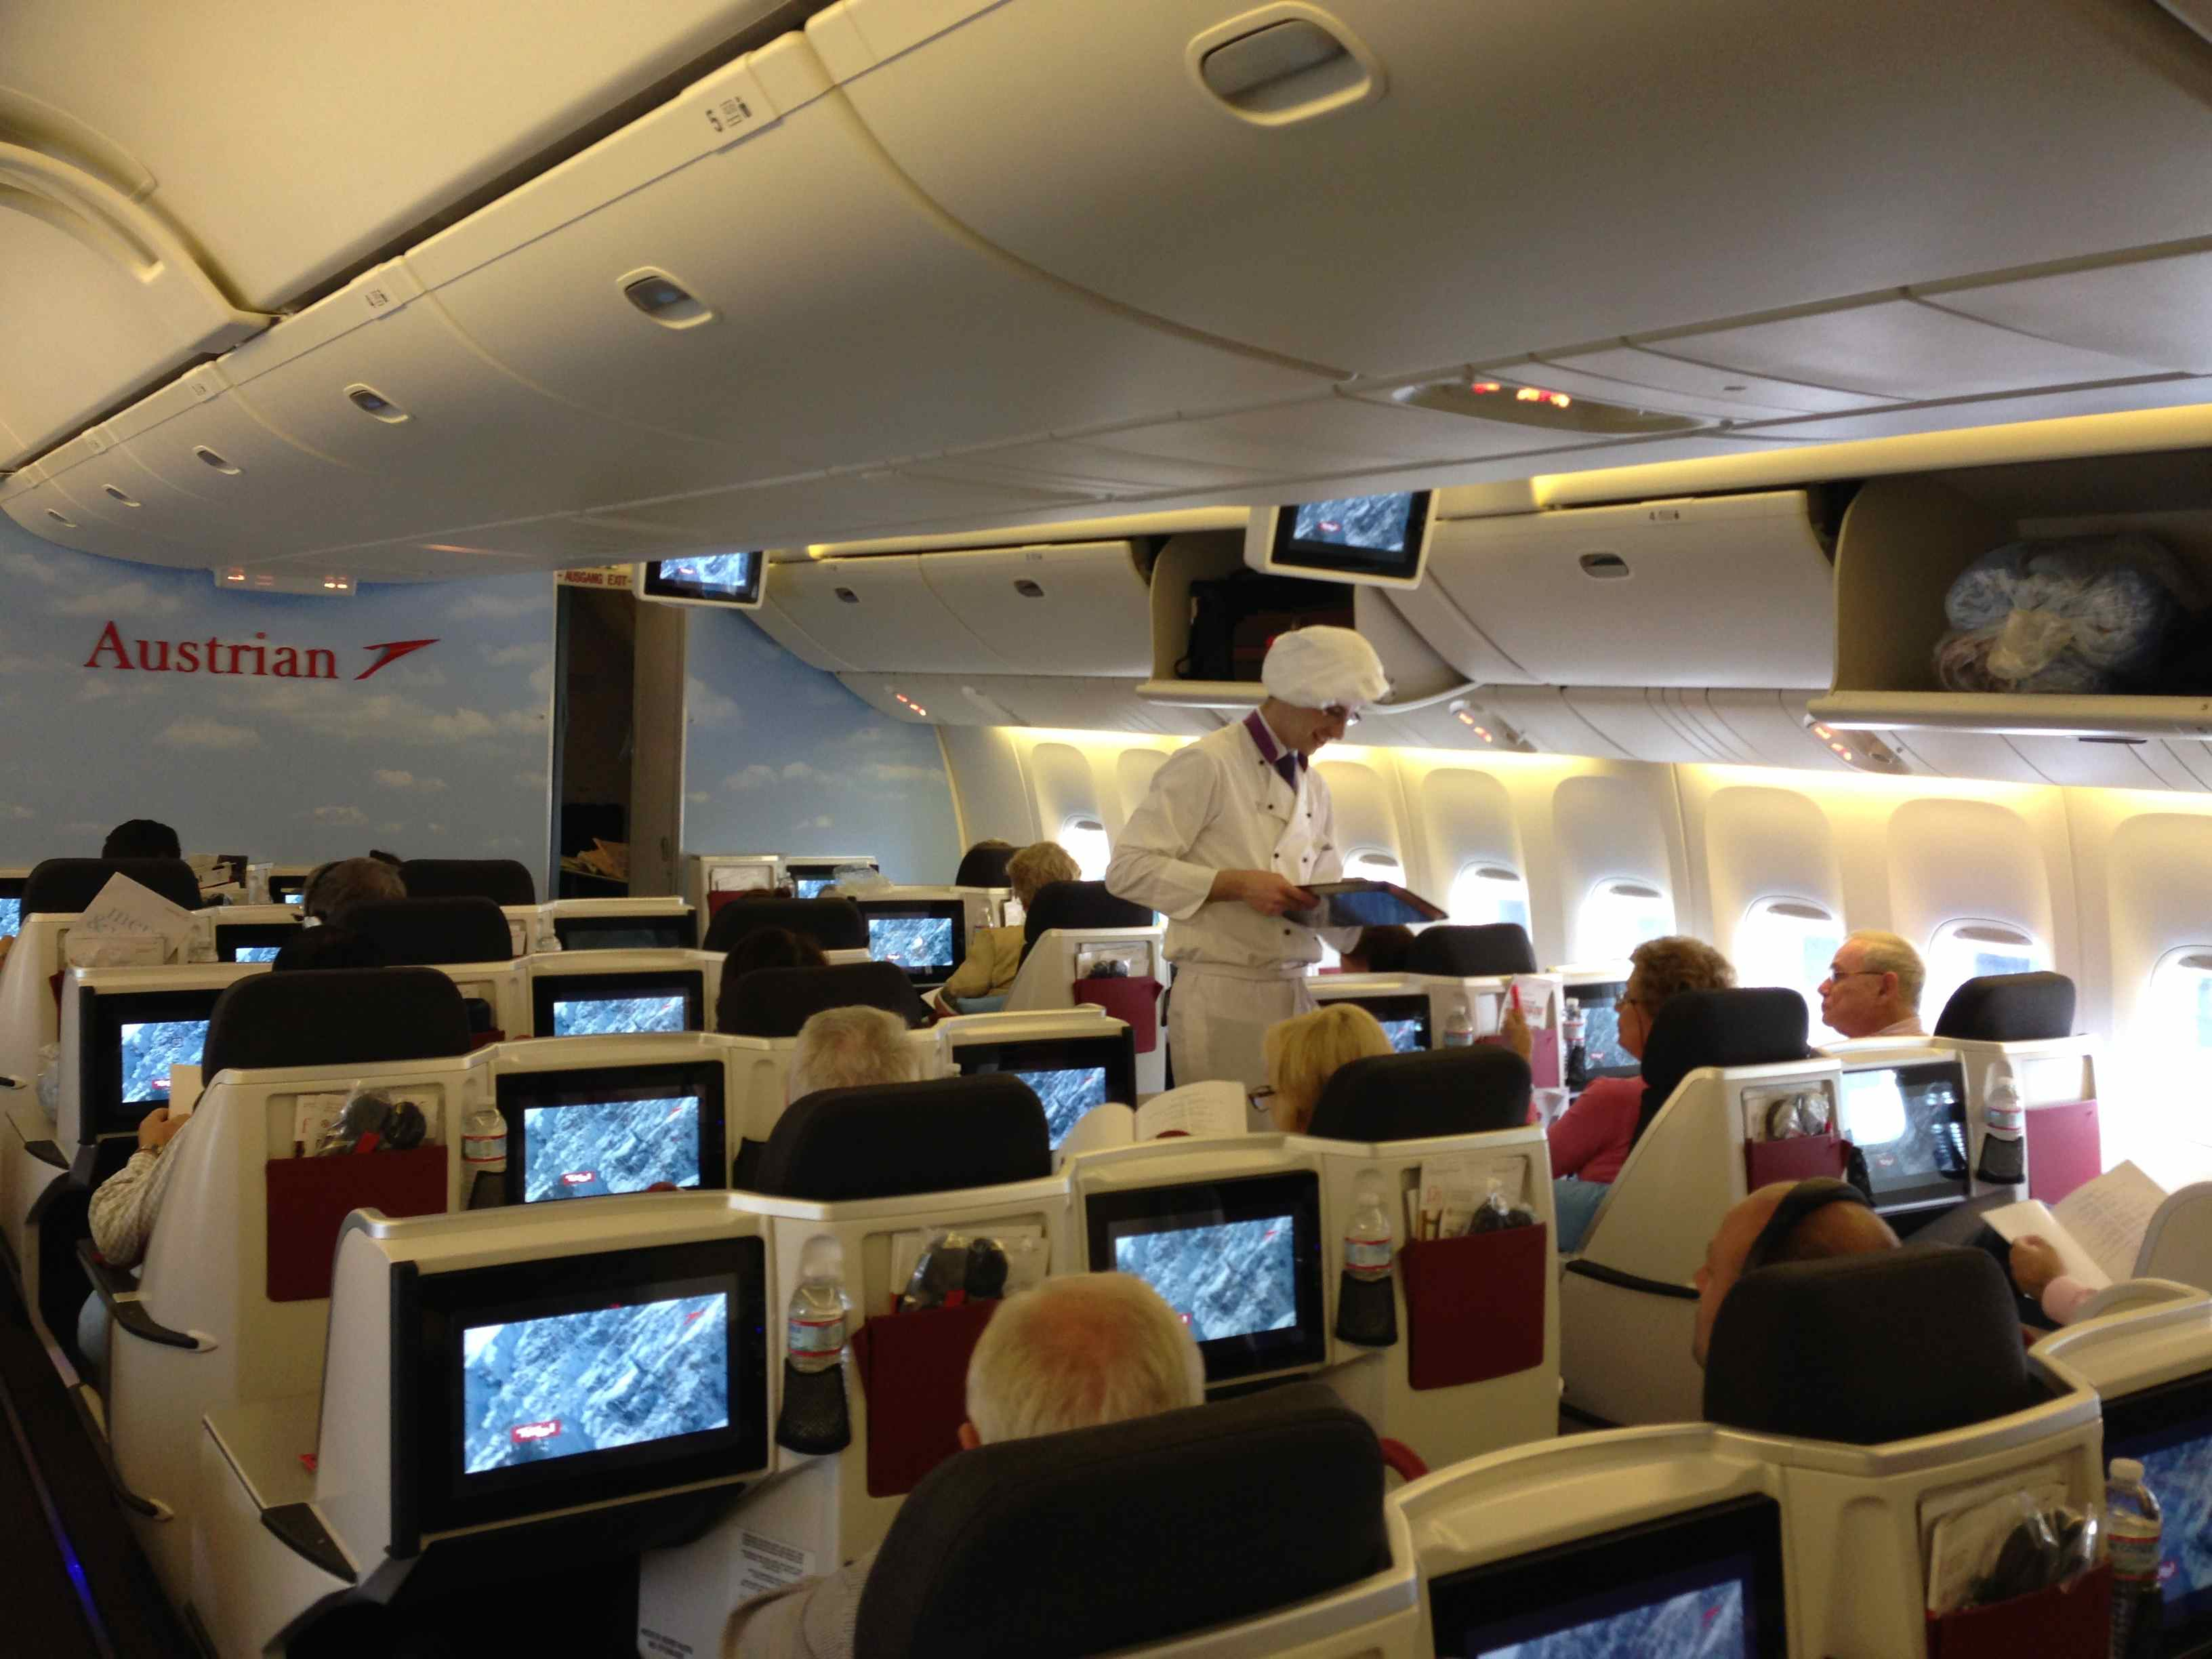 Flight review: Austrian Airlines B777-200 Business class